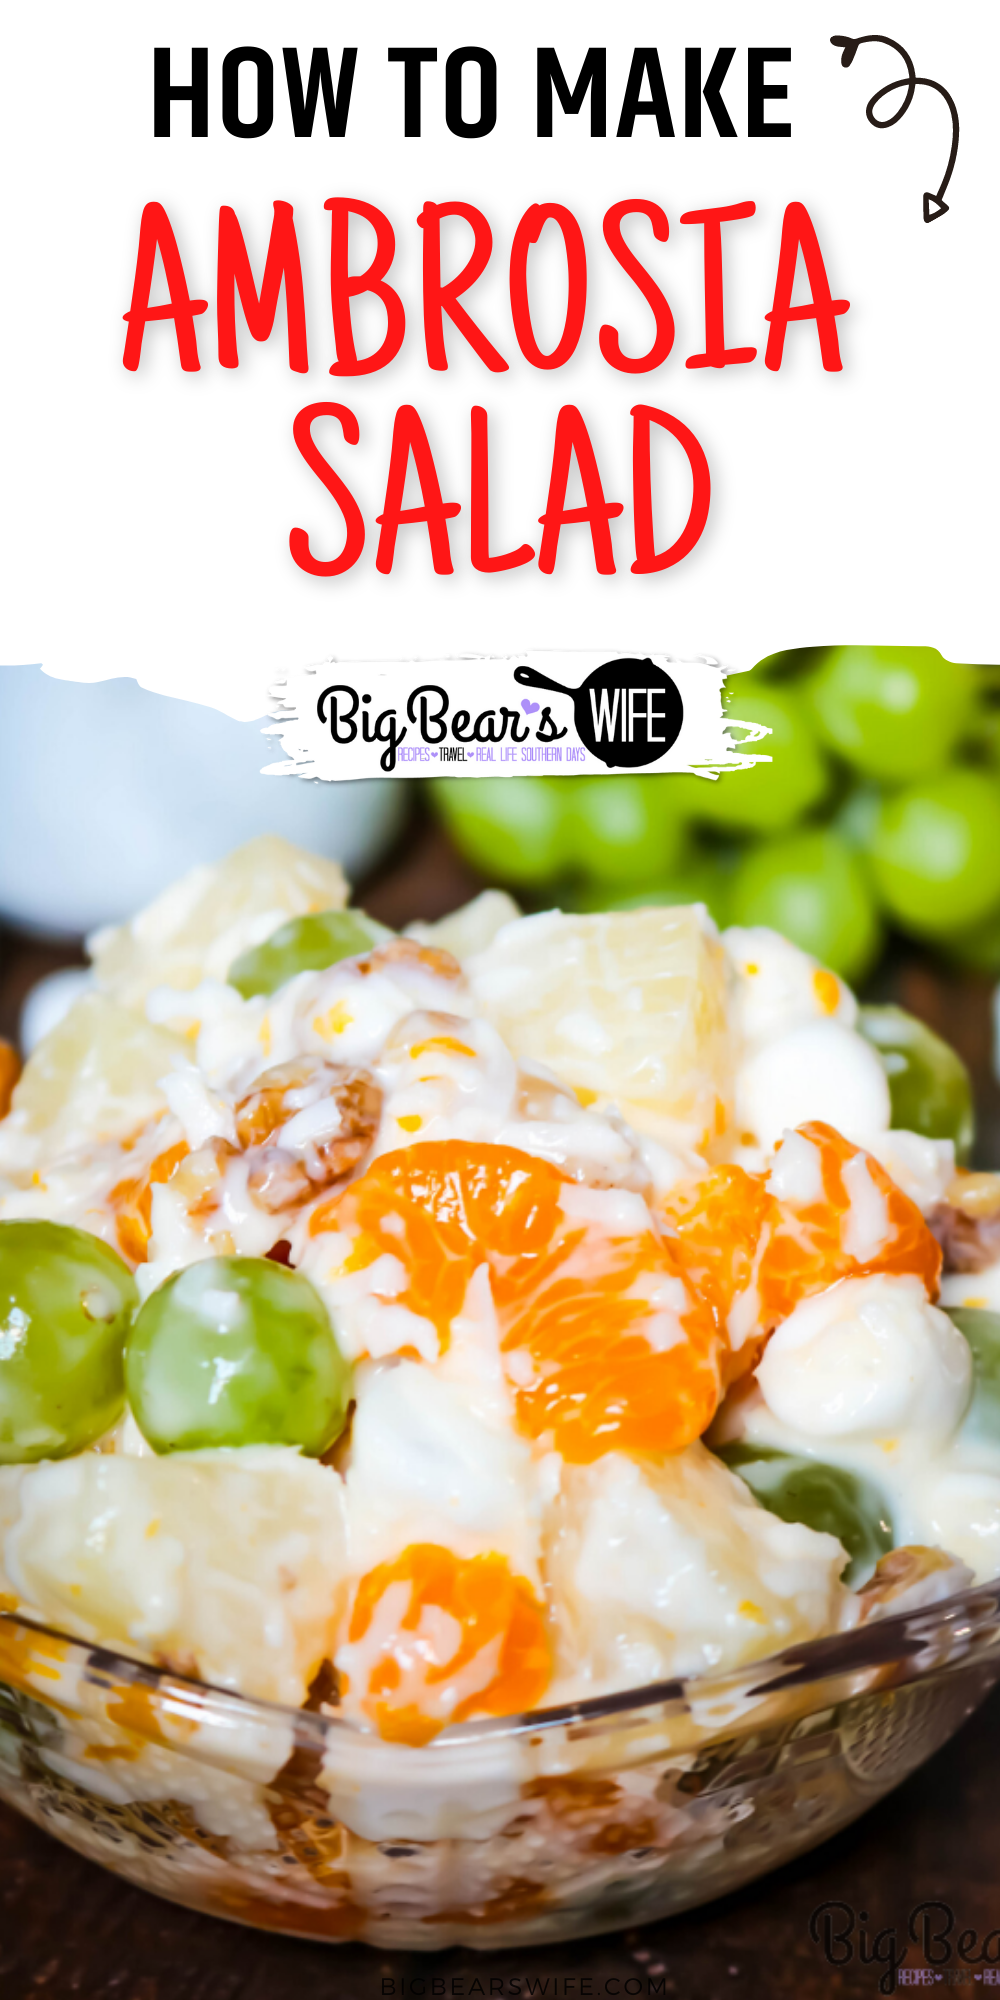 Ma' Southern Ambrosia Salad is a delicious southern fruit salad that's the perfect side dish for any family dinner or cookout! It's a chilled fruit salad made with pineapple, mandarin oranges, green grapes, marshmallows, coconut and walnuts. via @bigbearswife